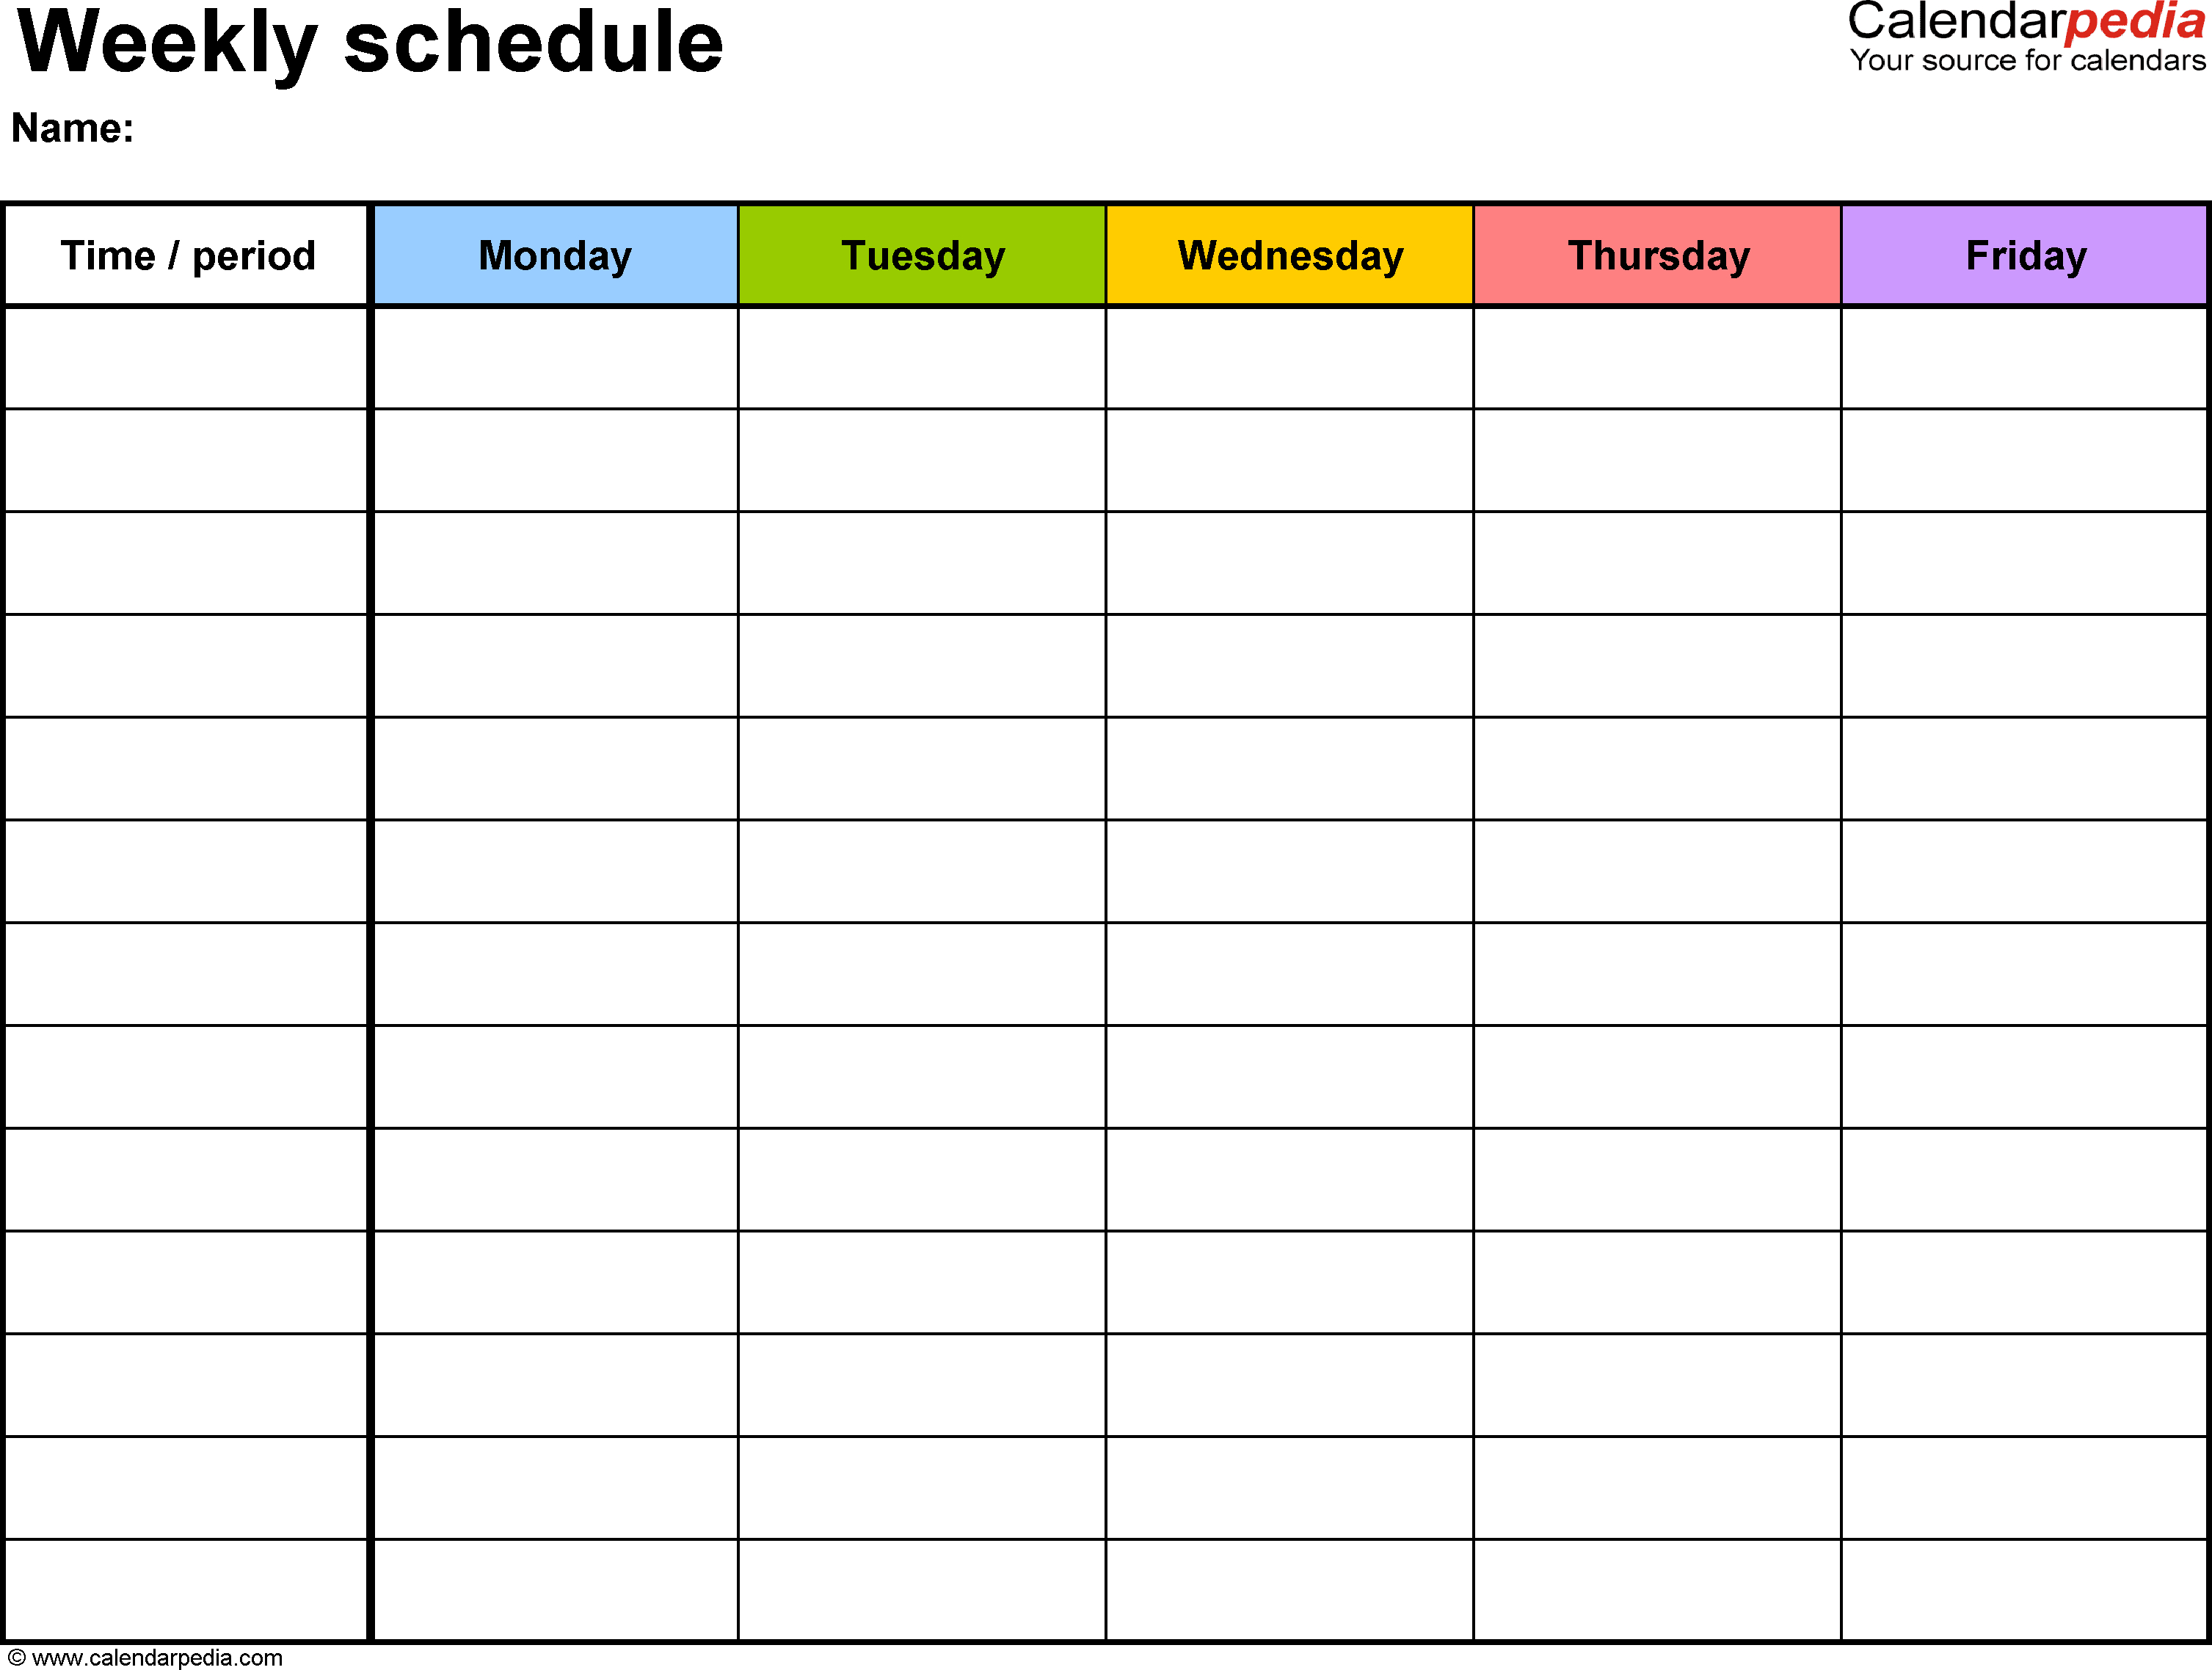 Free Weekly Schedule Templates For Pdf - 18 Templates inside Cute Printable Blank Calendar Template